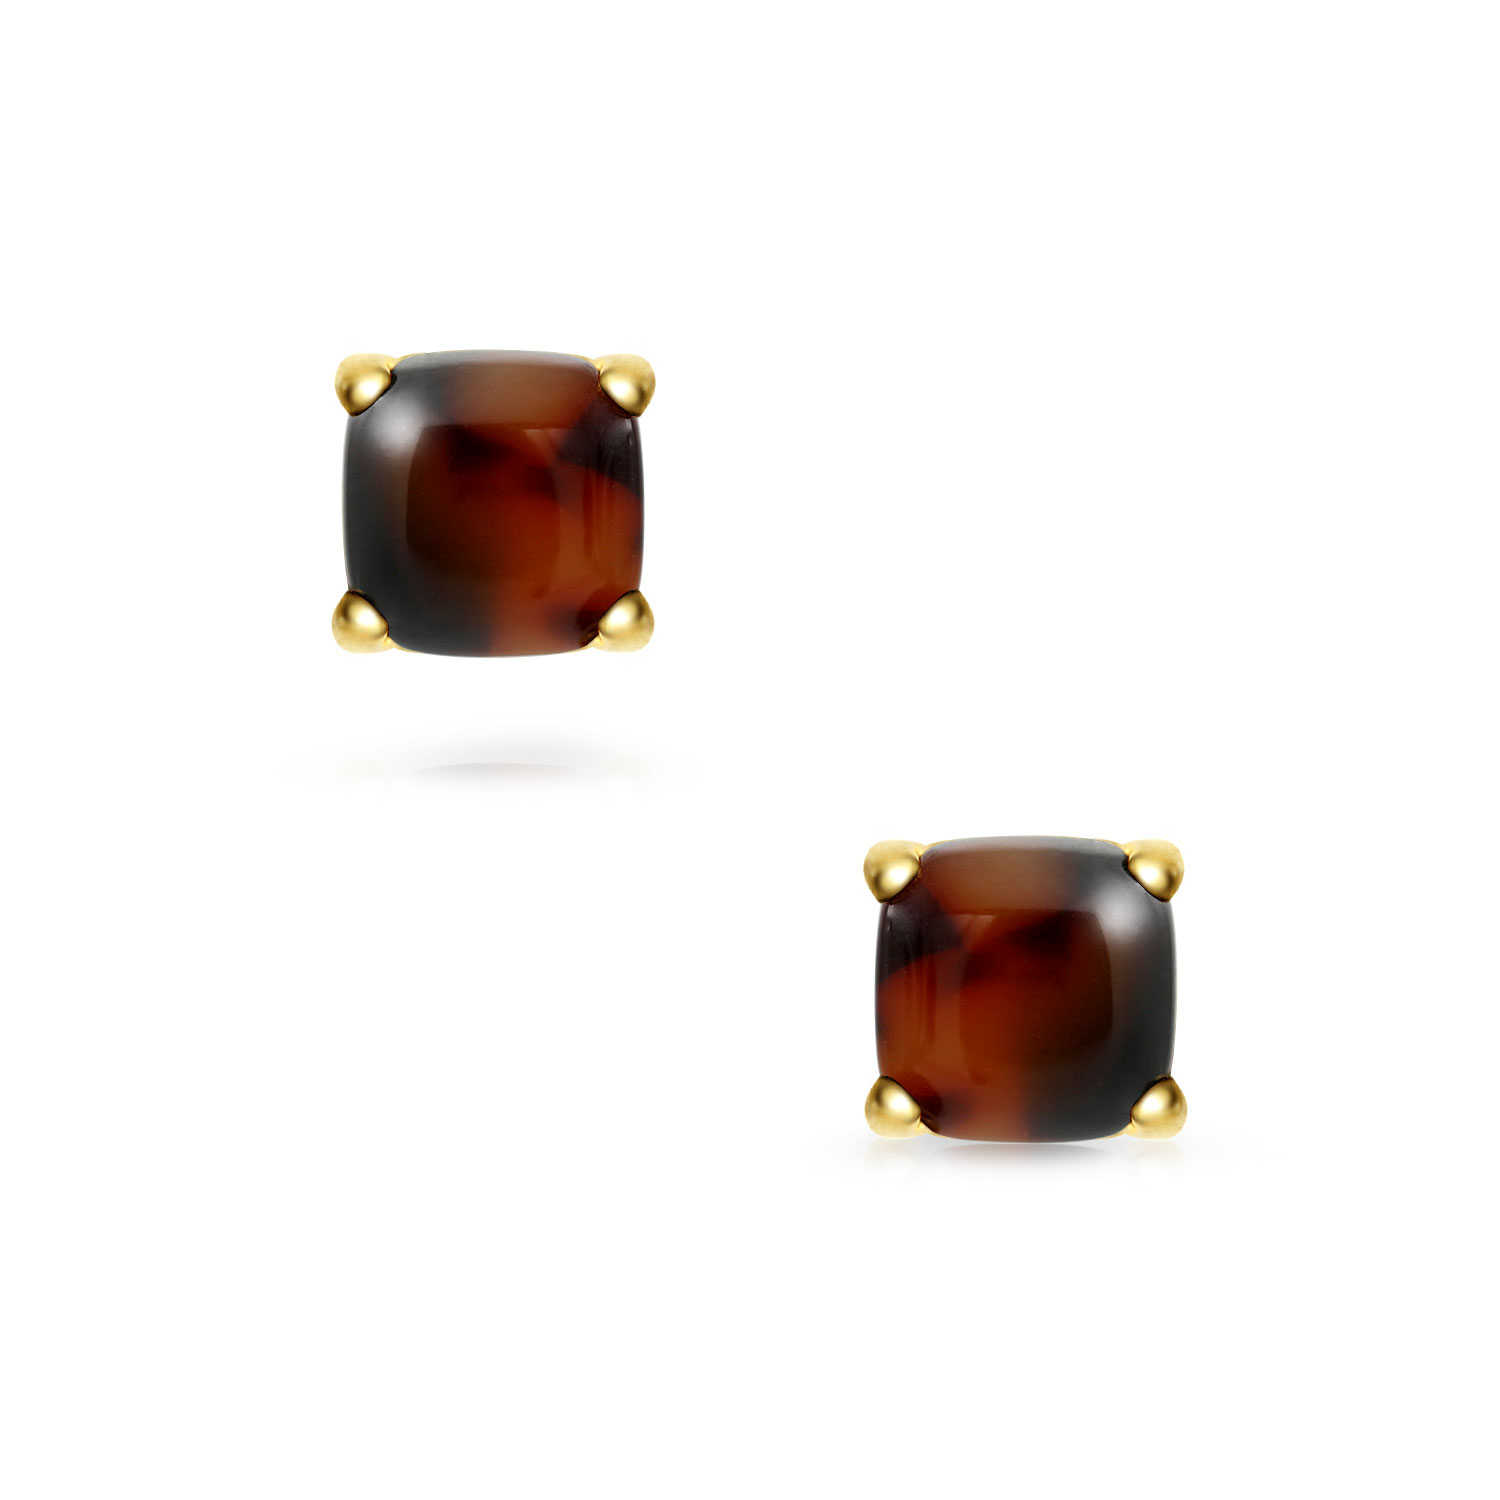 Bling Jewelry Acrylic Tortoise Shell Gold Plated Steel Stud earrings 8mm